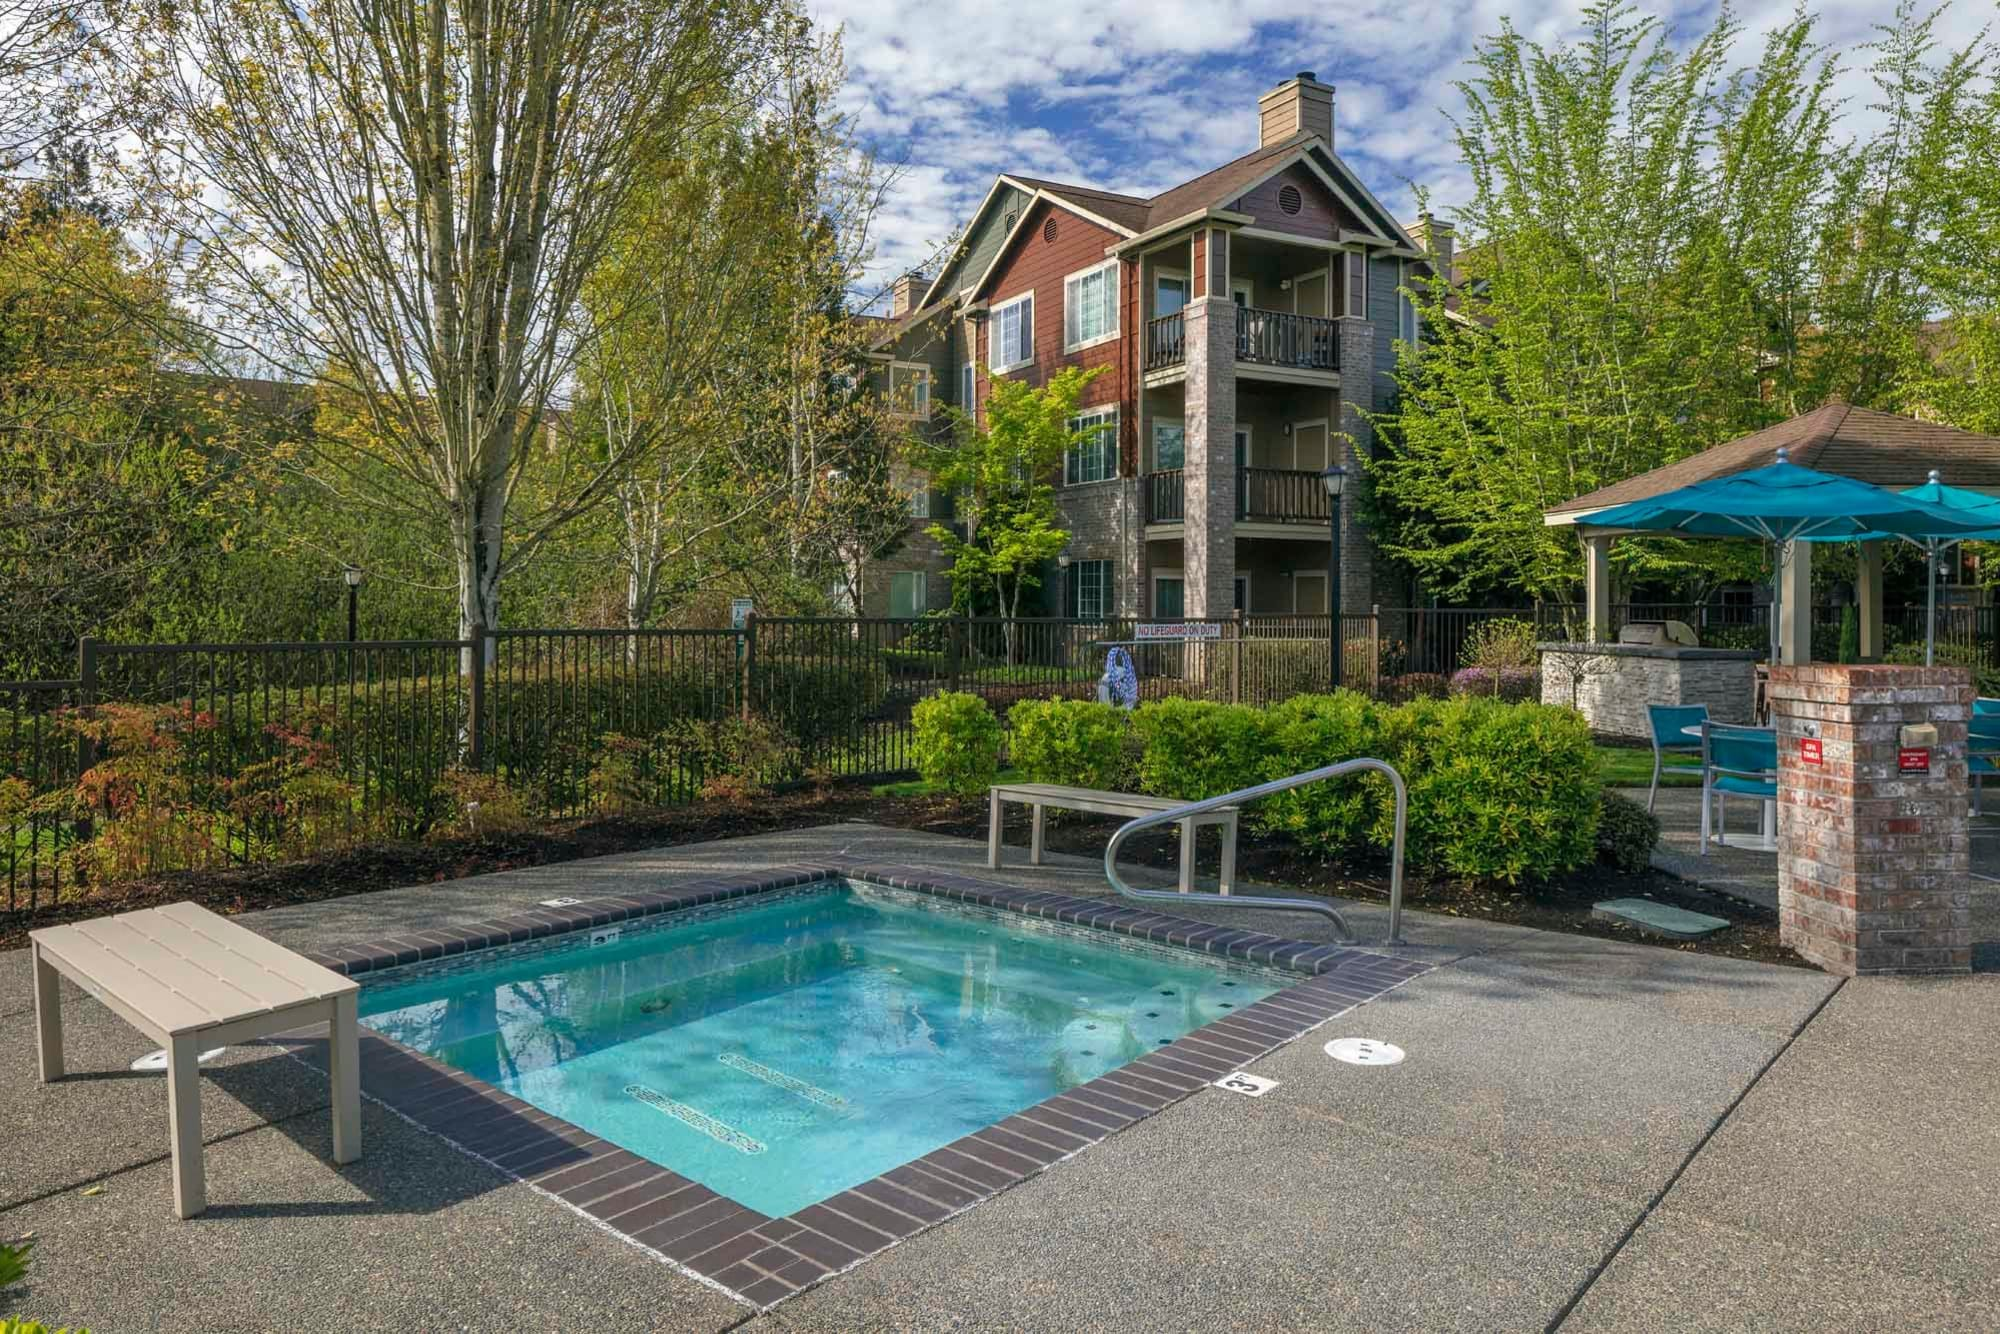 A hot tub with two benches next to it at The Grove at Orenco Station in Hillsboro, Oregon